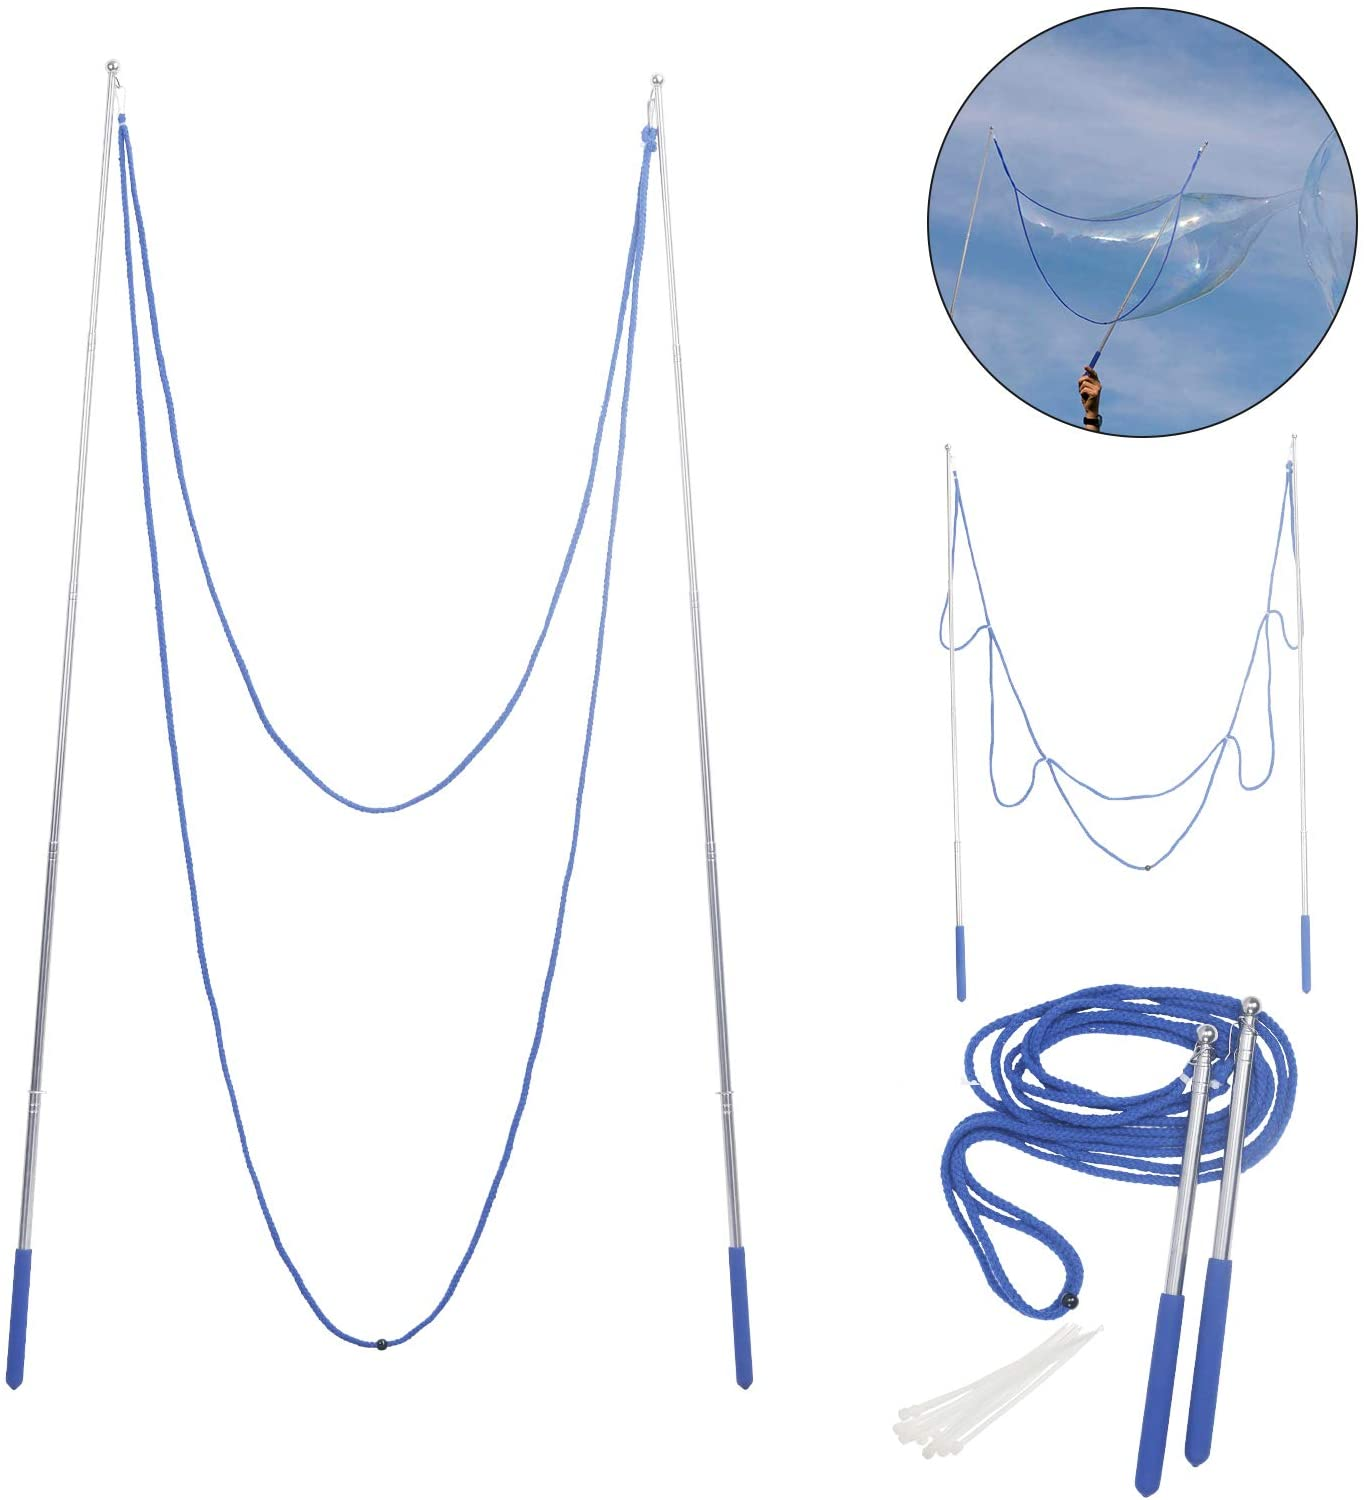 Bubble Wand Rope Giant Stainless Steel Telescopic Design For Kids Adult Toys